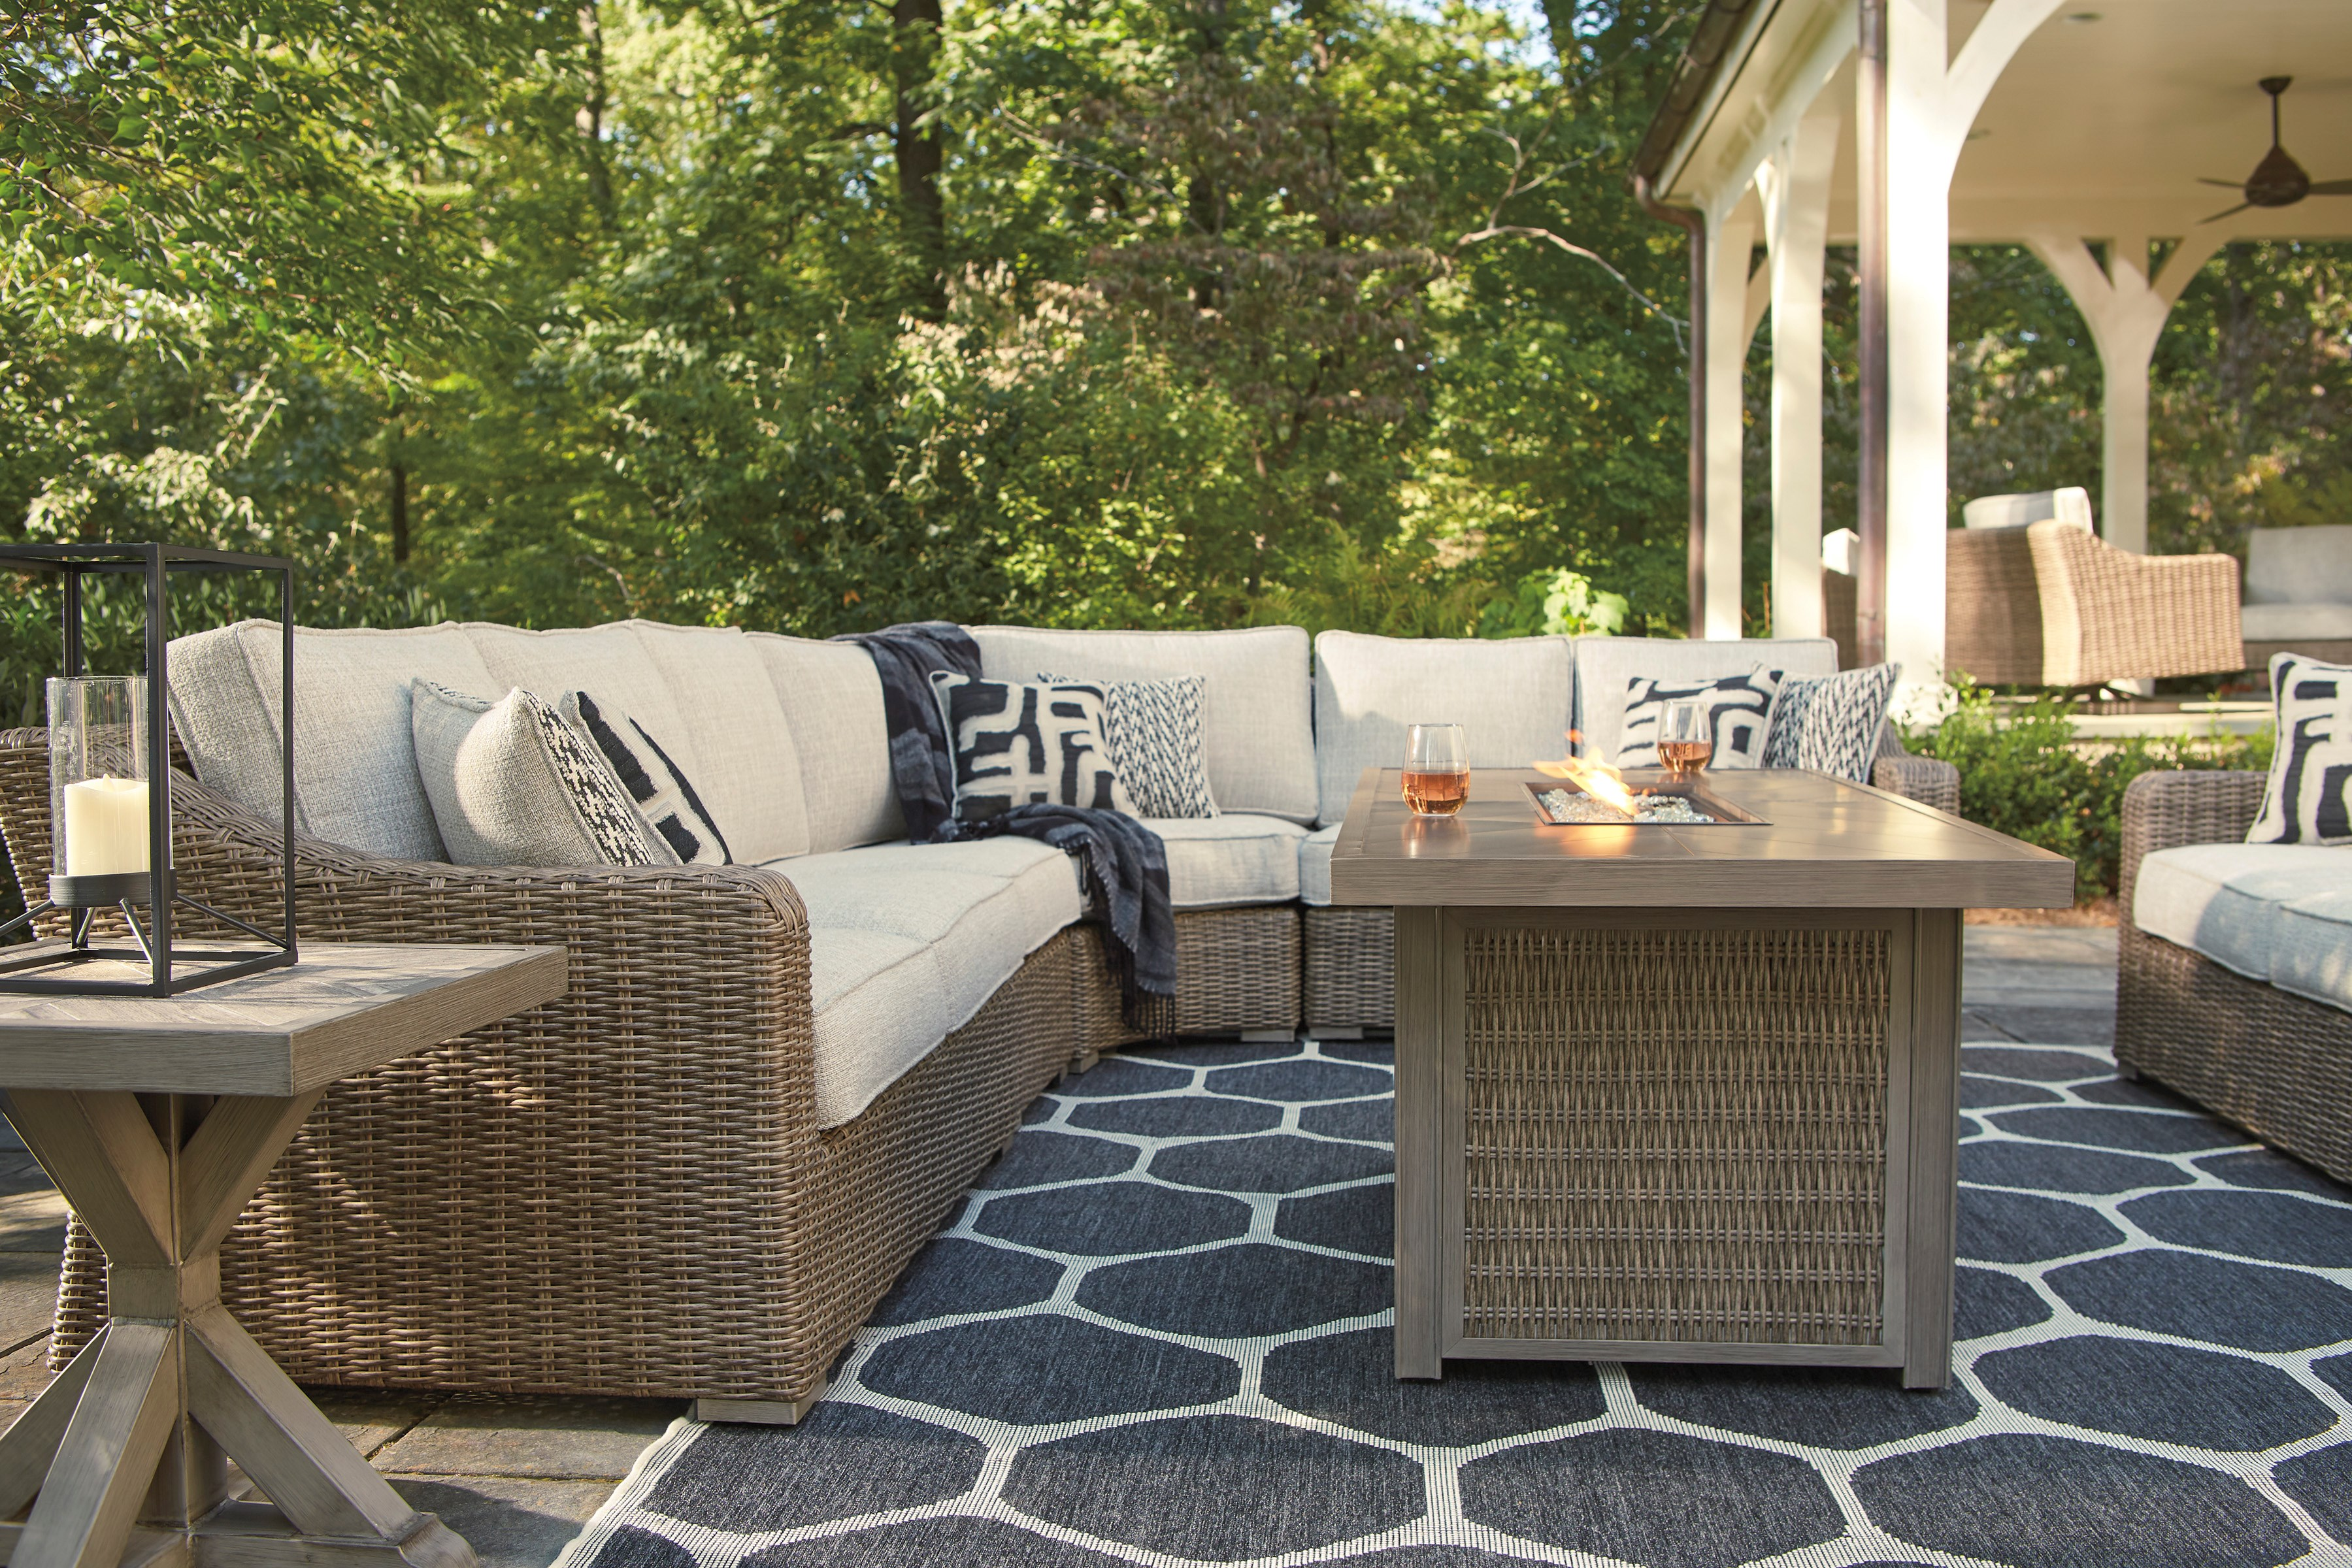 Outdoor Furniture Northeast Factory Direct Cleveland Eastlake Westlake Mentor Medina Macedonia Ohio